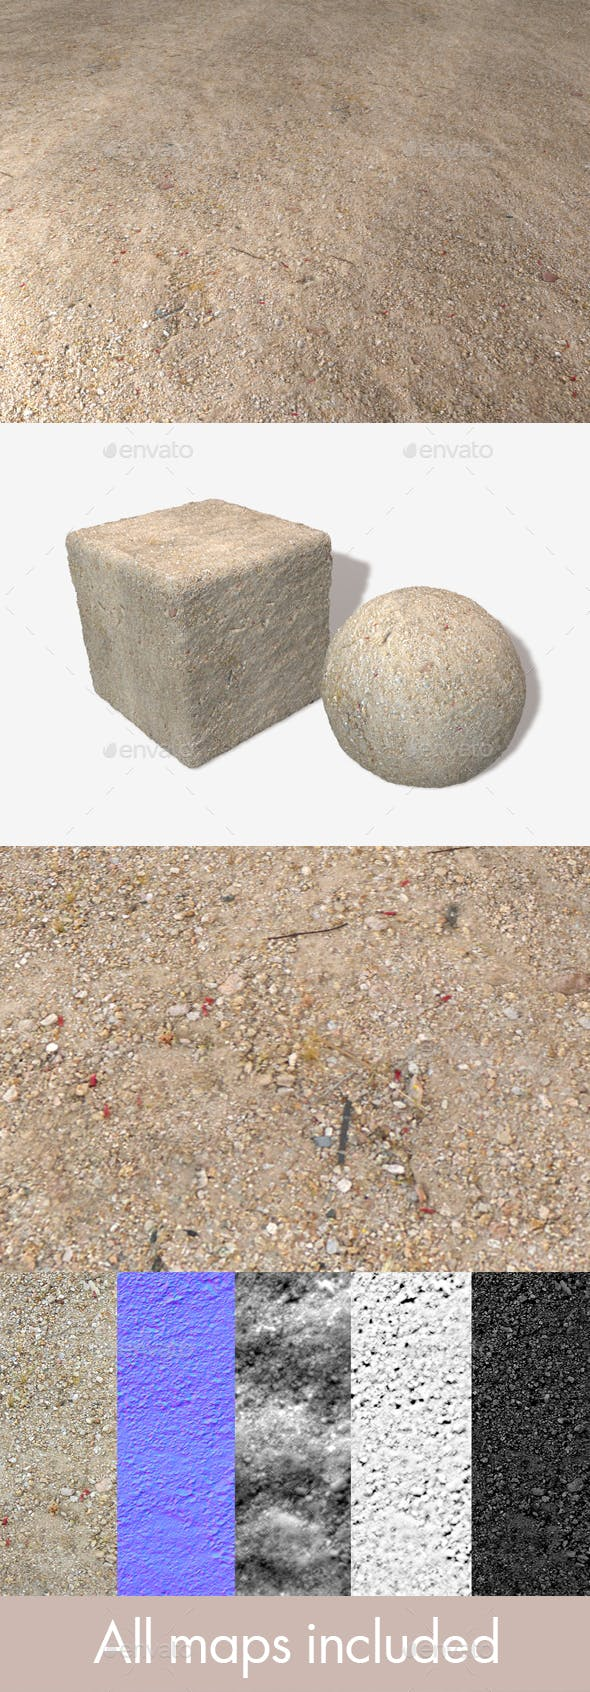 Desert Ground with Petals Seamless Texture - 3DOcean Item for Sale